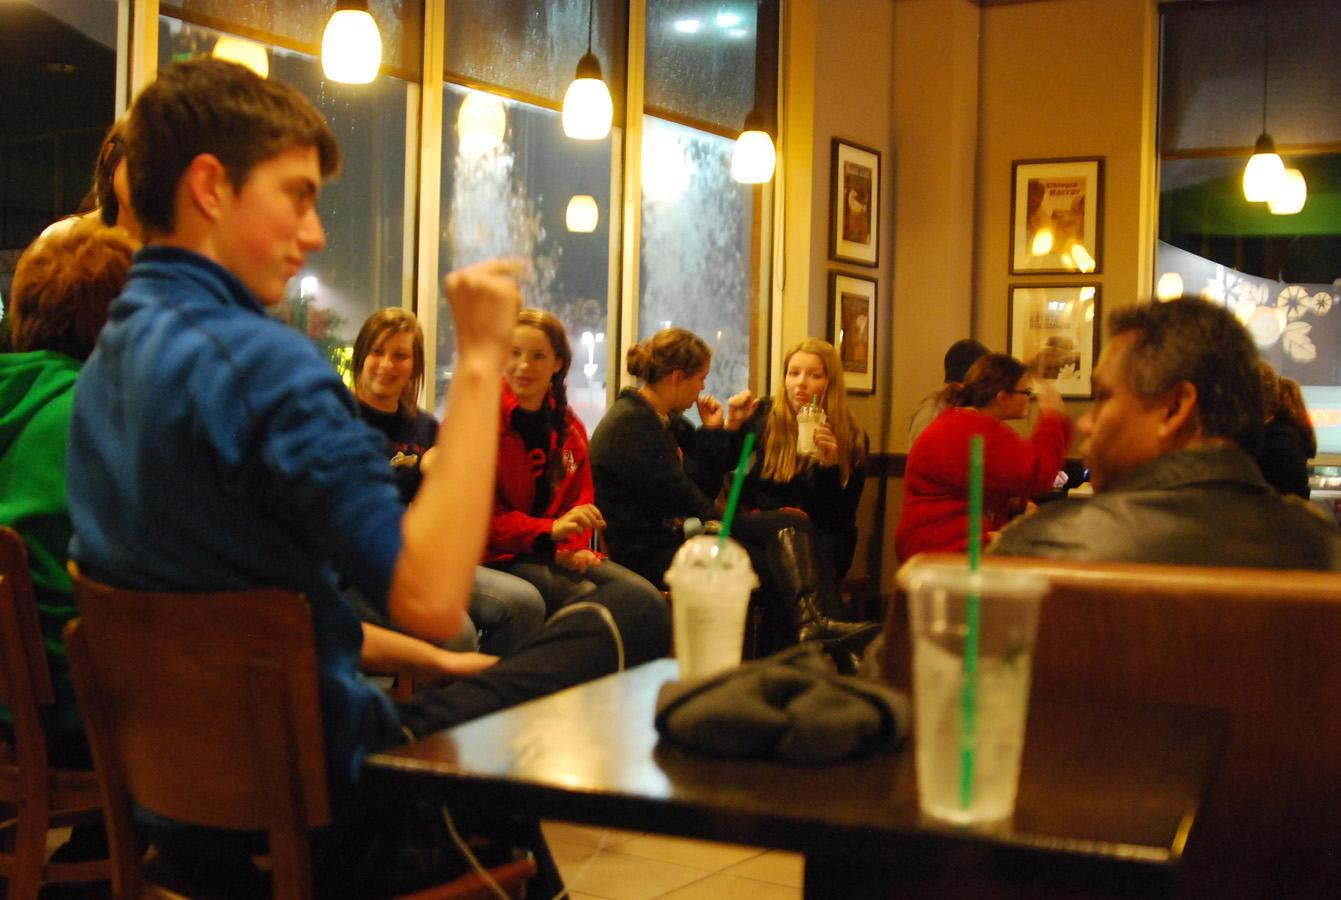 ASL students recently had the opportunity to go to Deaf Coffee. This trip enriched the students learning experience by giving them a